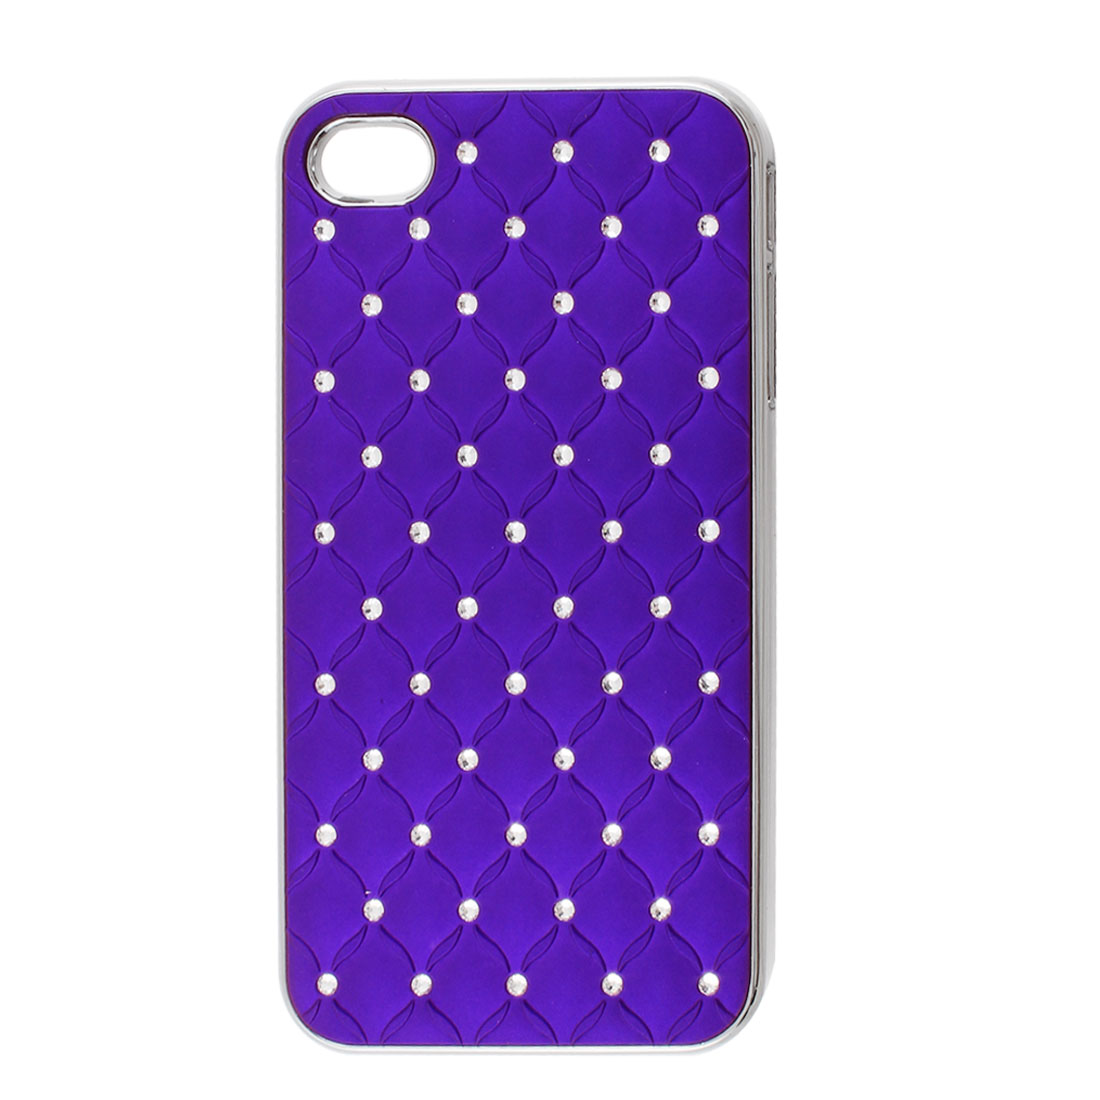 Purple Faux Leather Coated Rhinestone Hard Back Case Cover for iPhone 4 4G